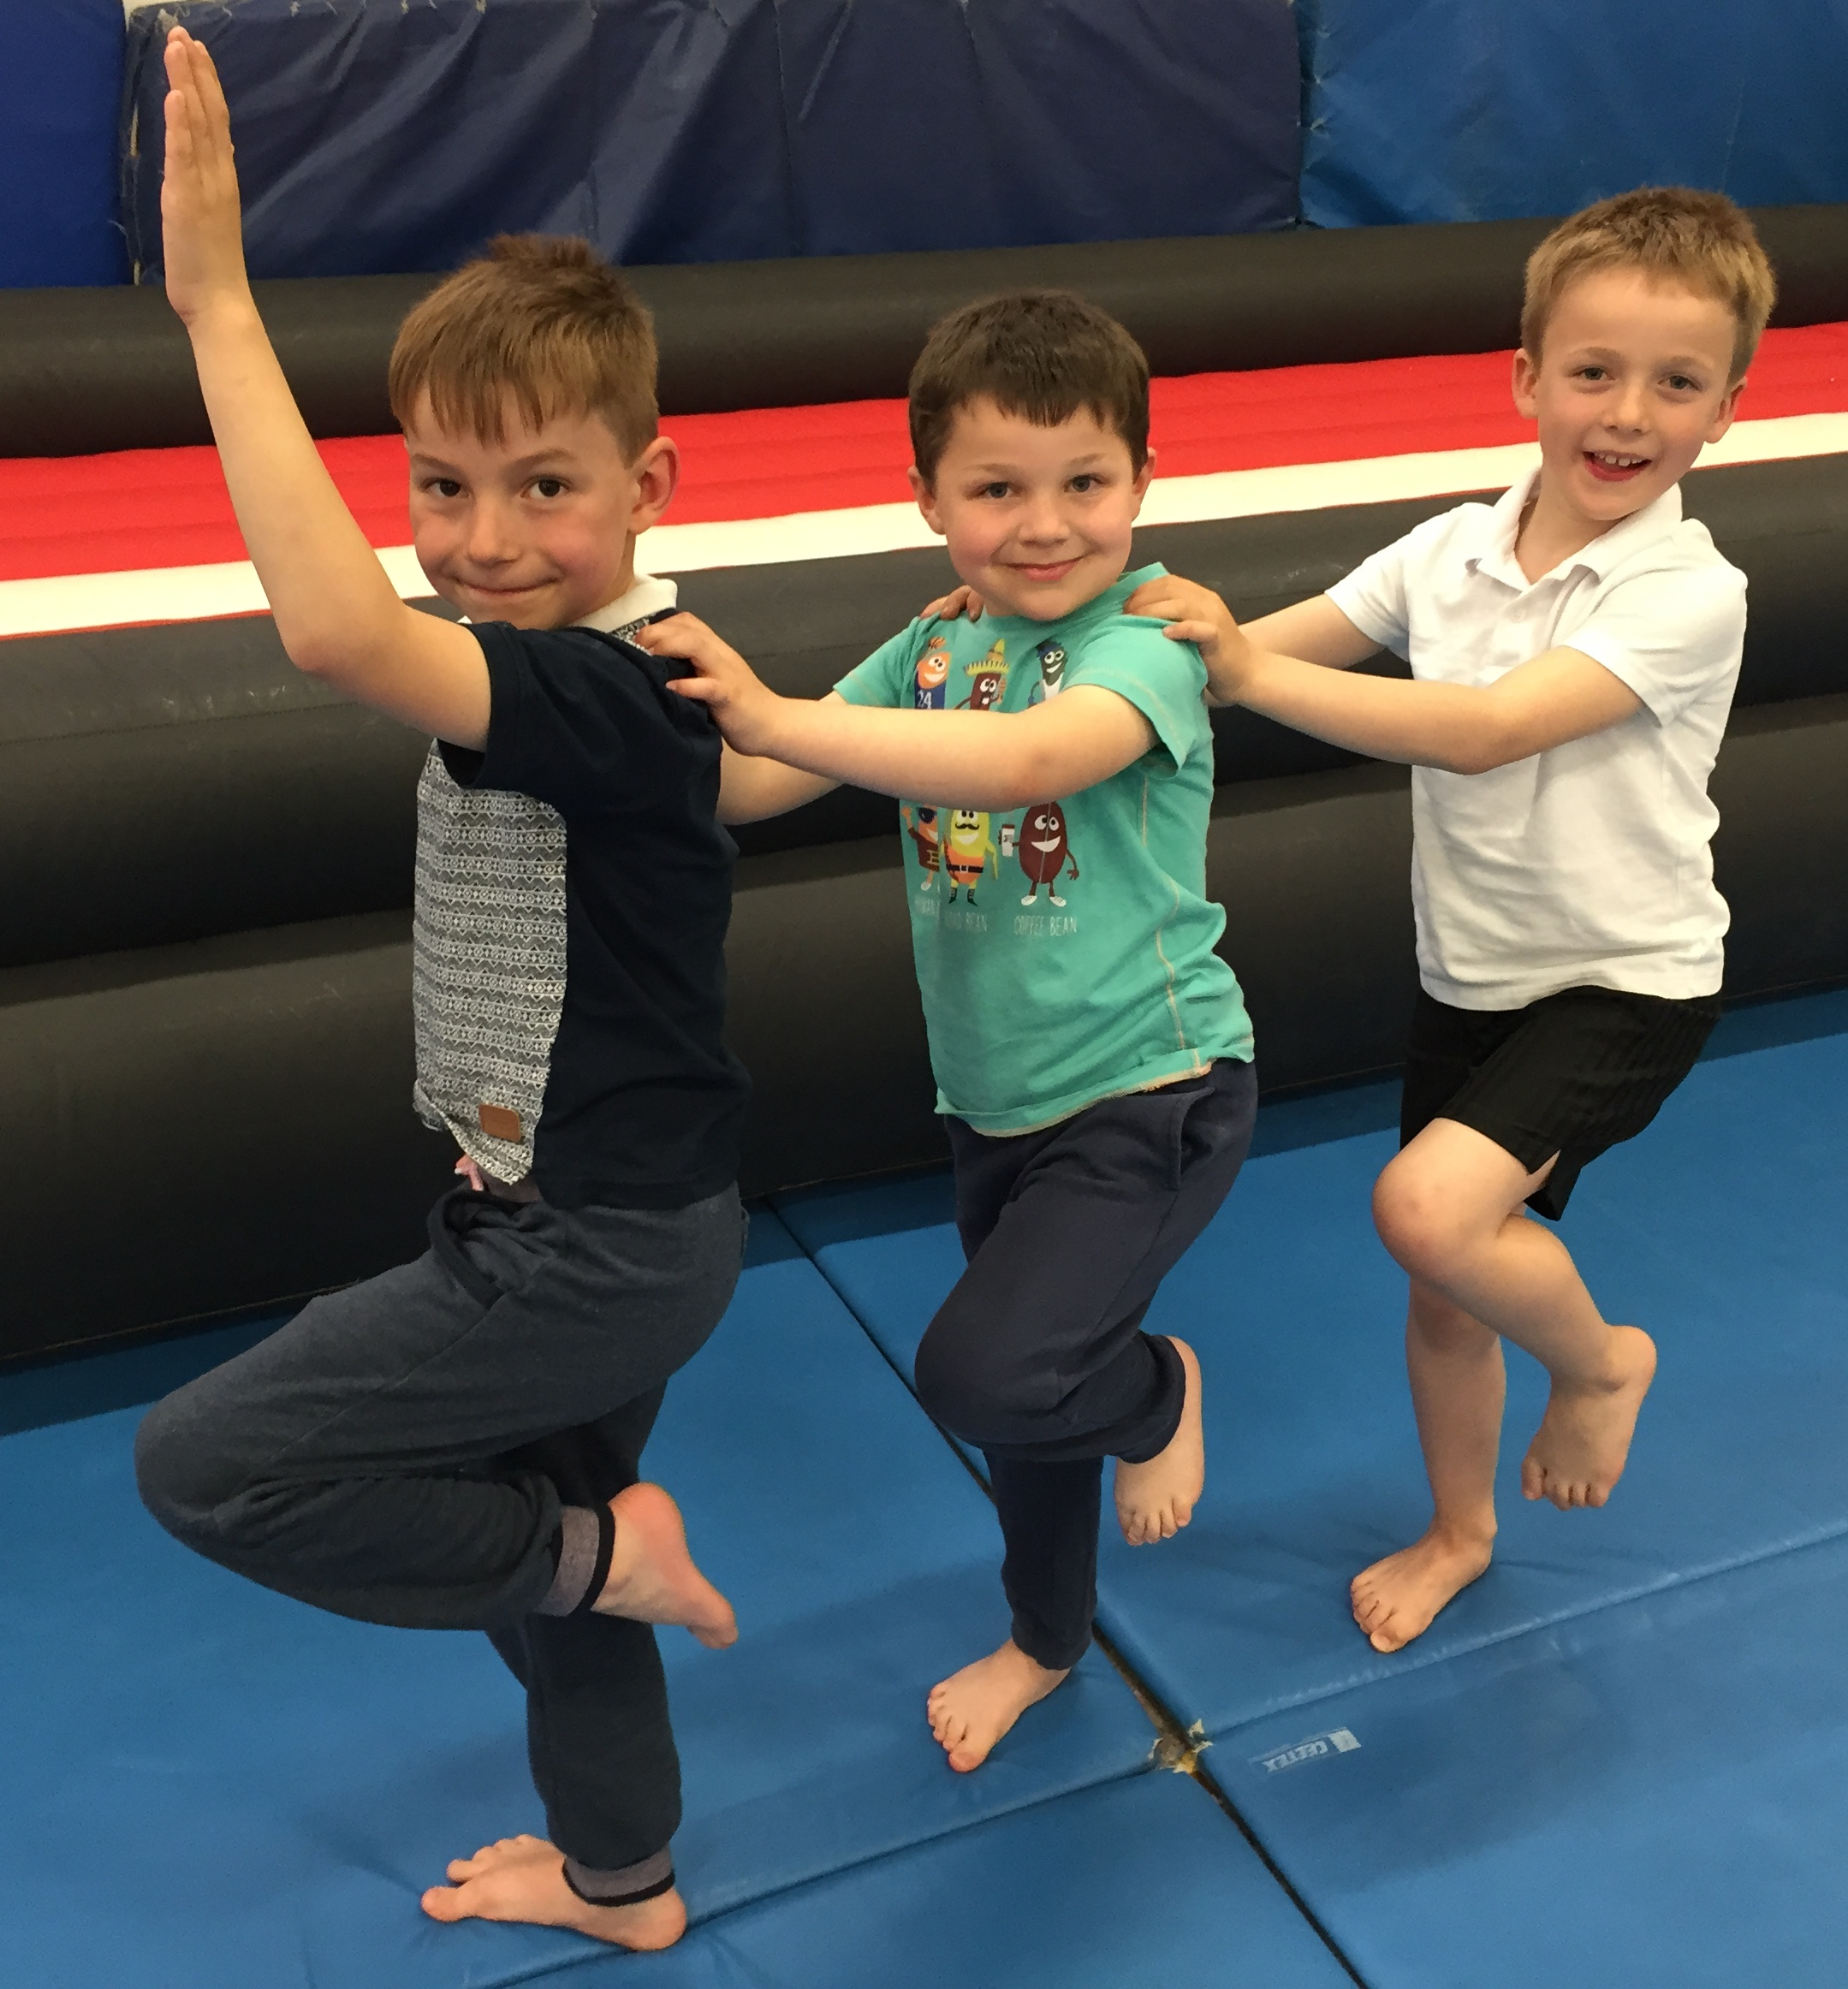 7 year old trio win crowd over at Acro competition – Springfit